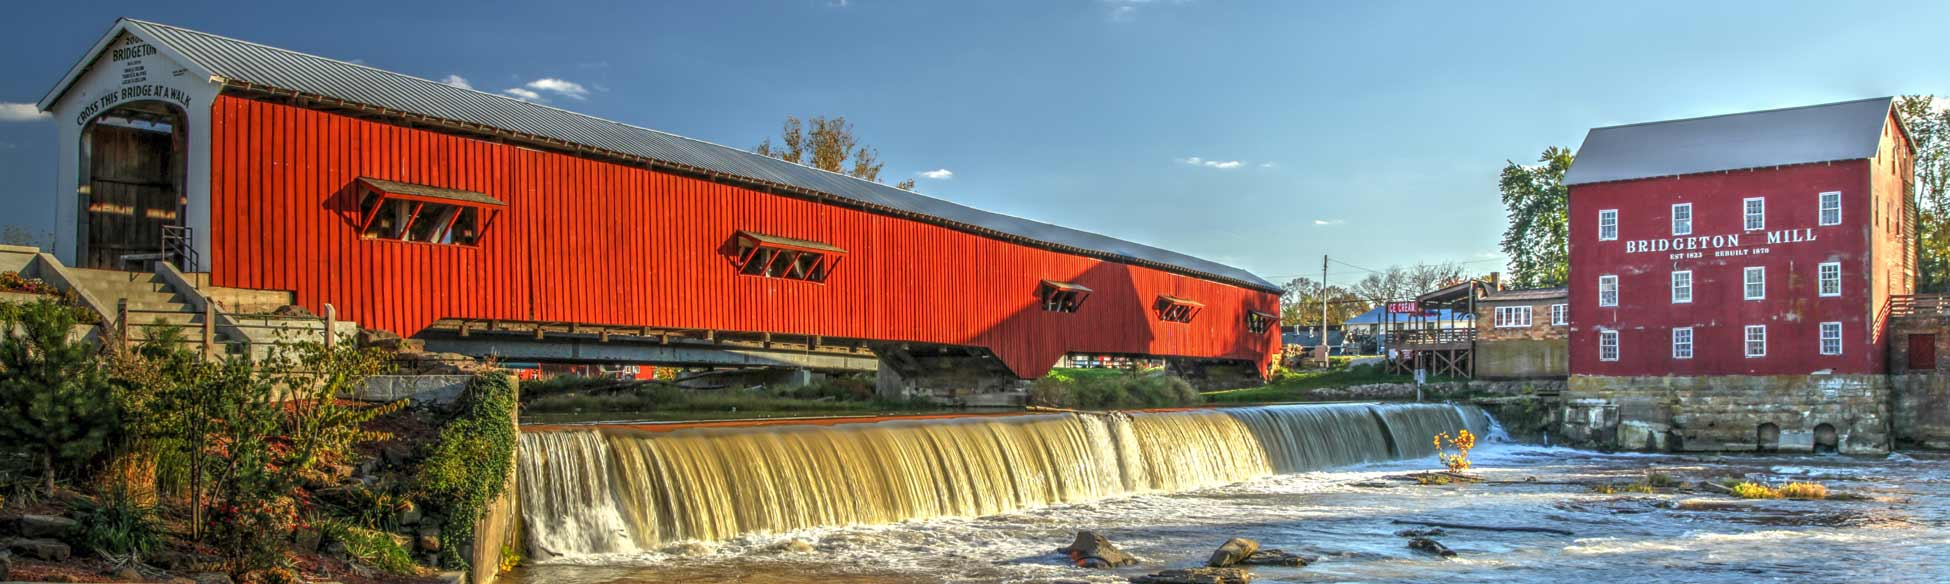 Bridgeton Covered Bridge and Mill, Bridgeton, Indiana